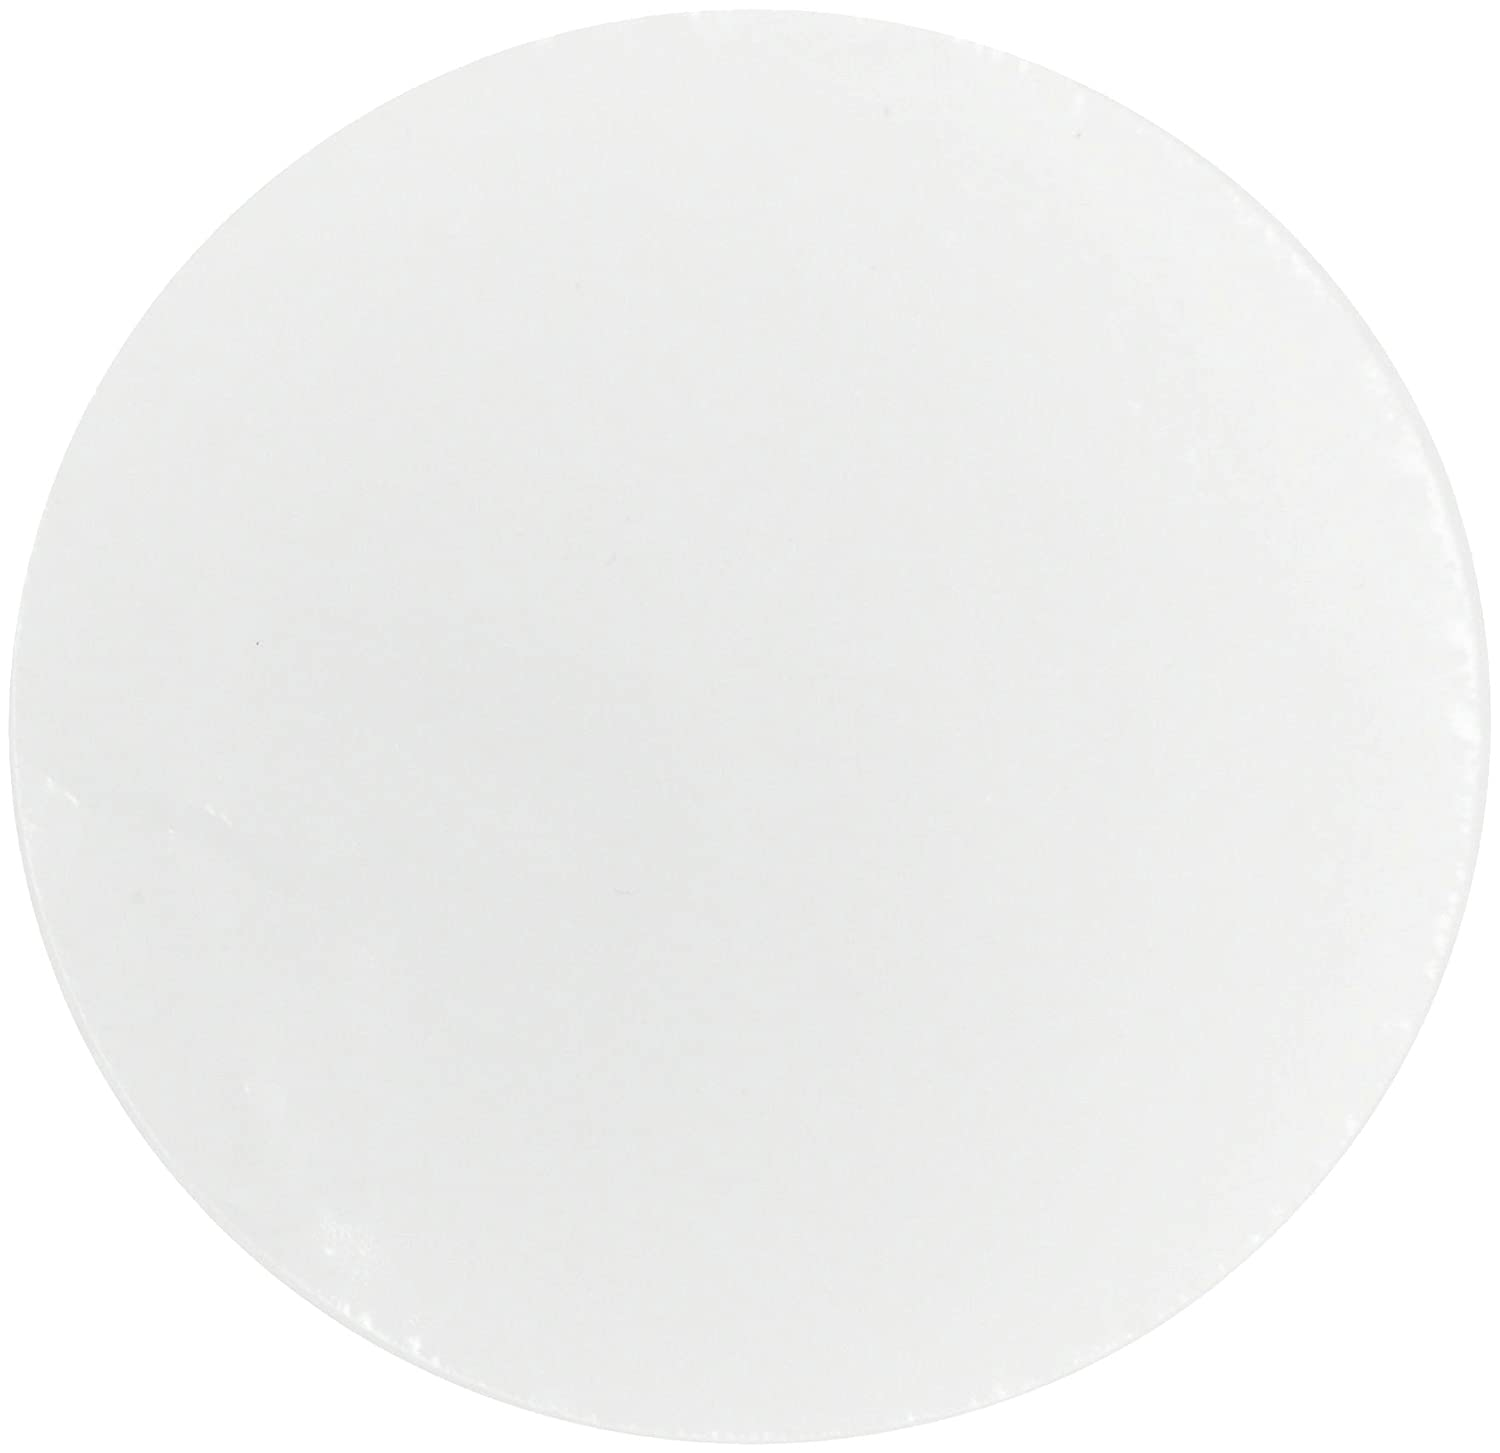 Whatman 110407 Polycarbonate Nuclepore Track-Etched Membrane Filters, 13mm Diameter, 0.4 Micron (Pack of 100) WHA-110407